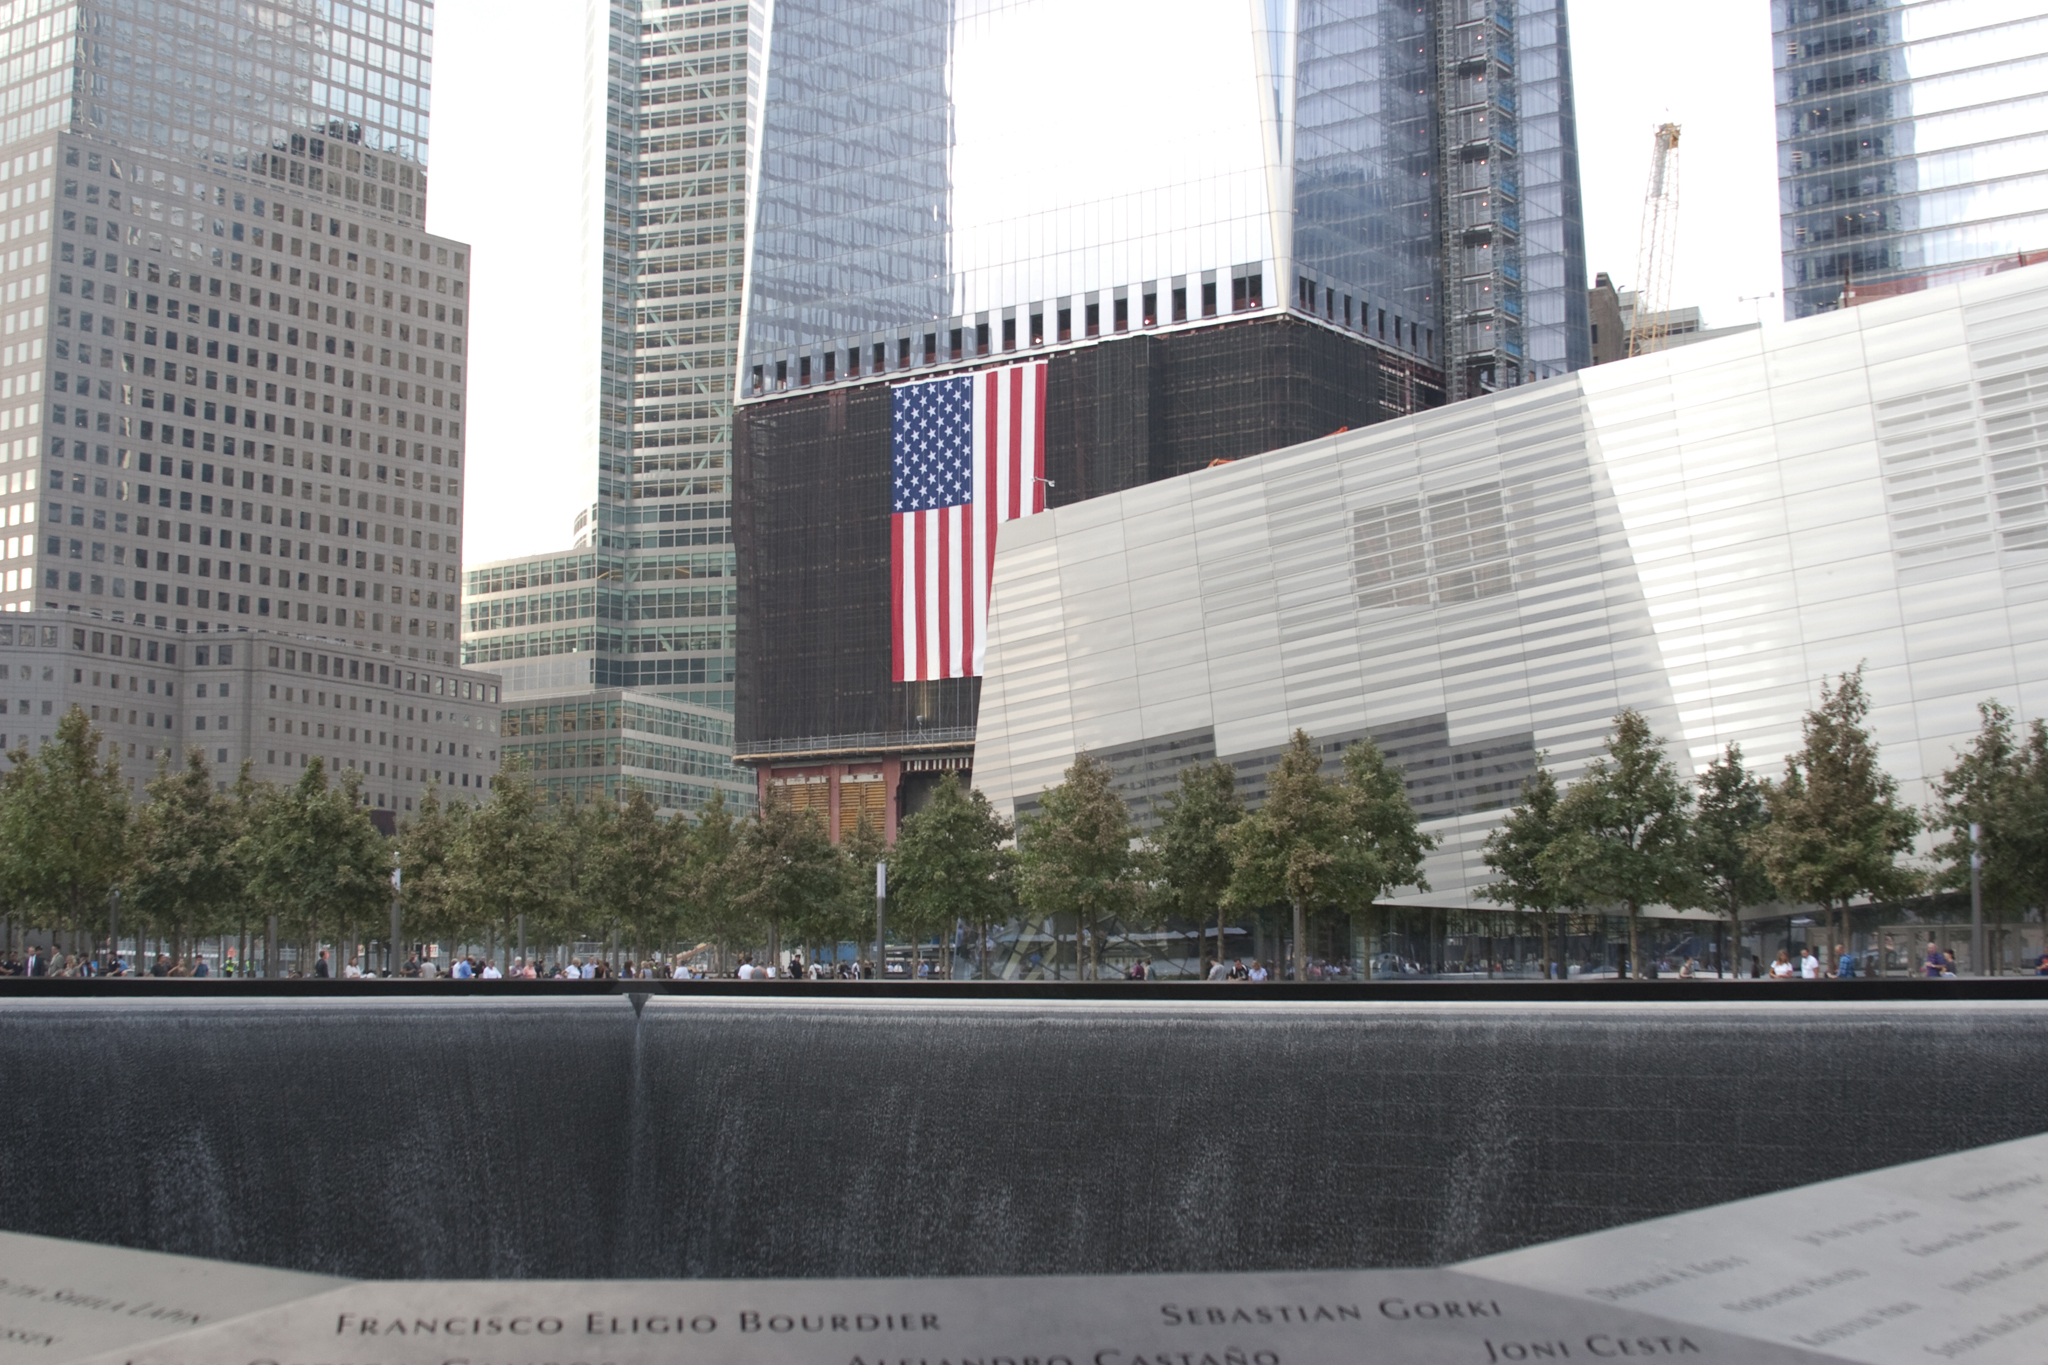 Guide to the 9/11 Memorial and Museum in NYC